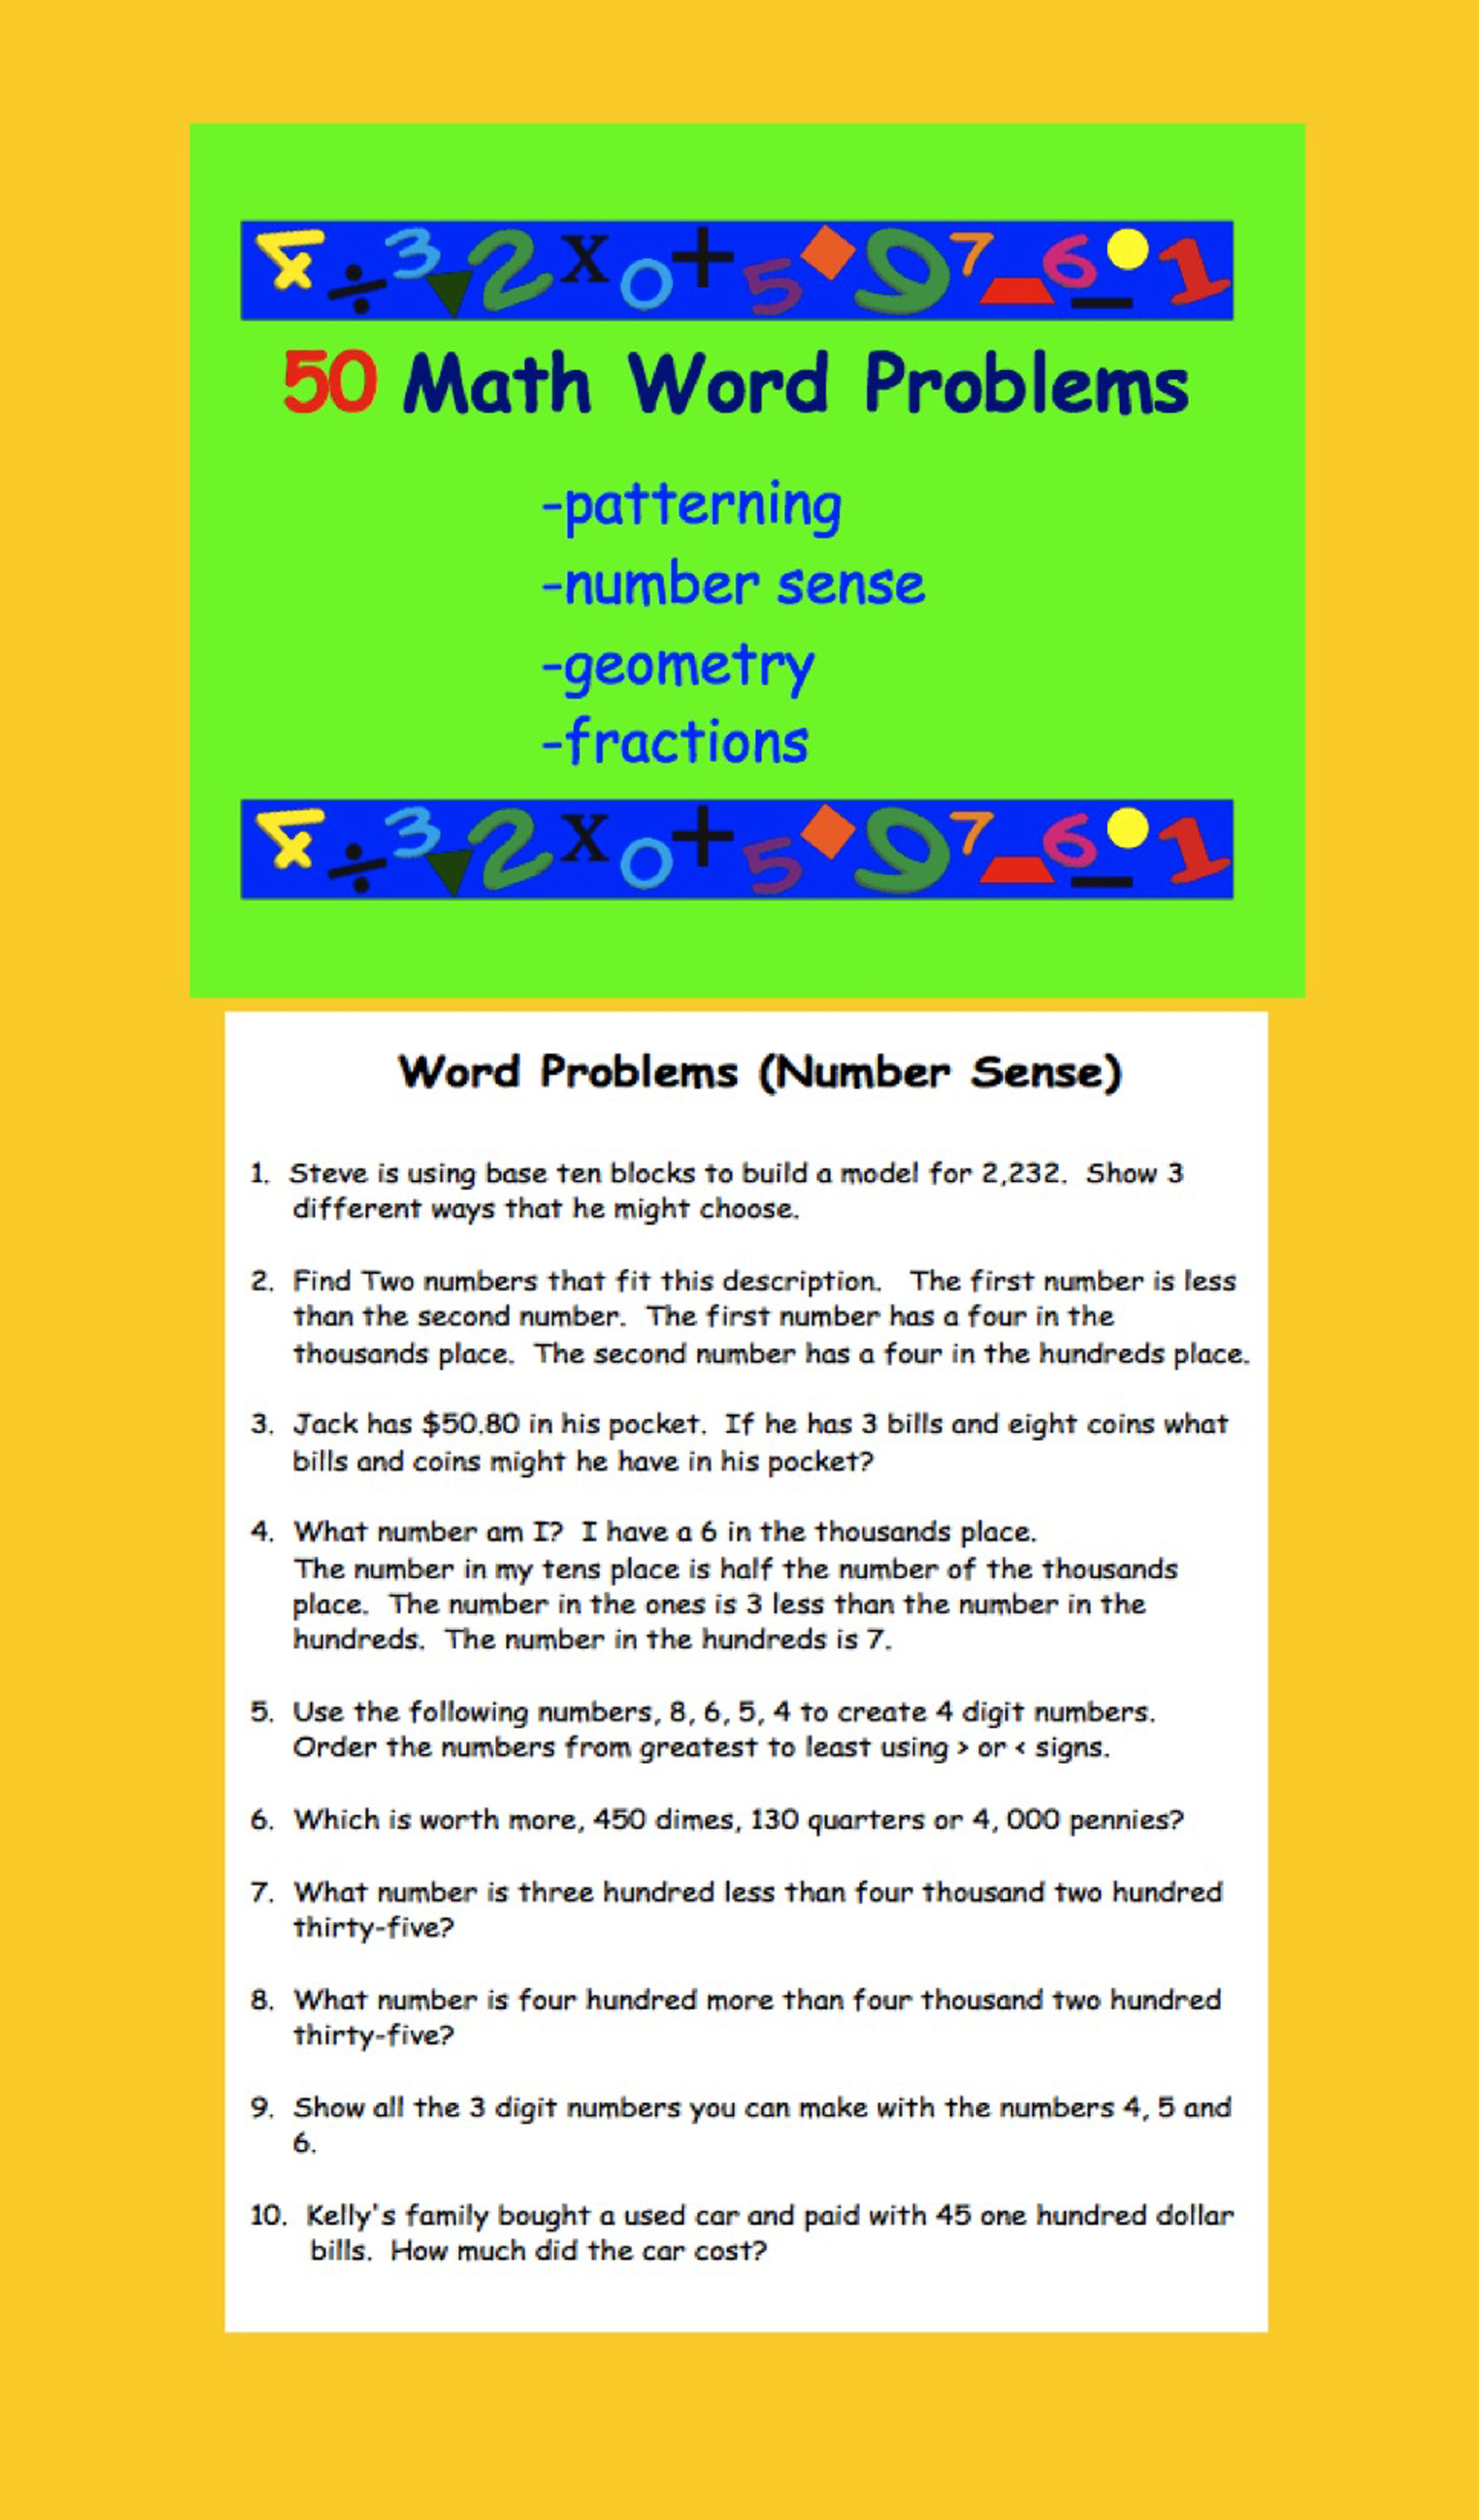 50 Math Word Problems Patterning Number Sense Geometry Fractions